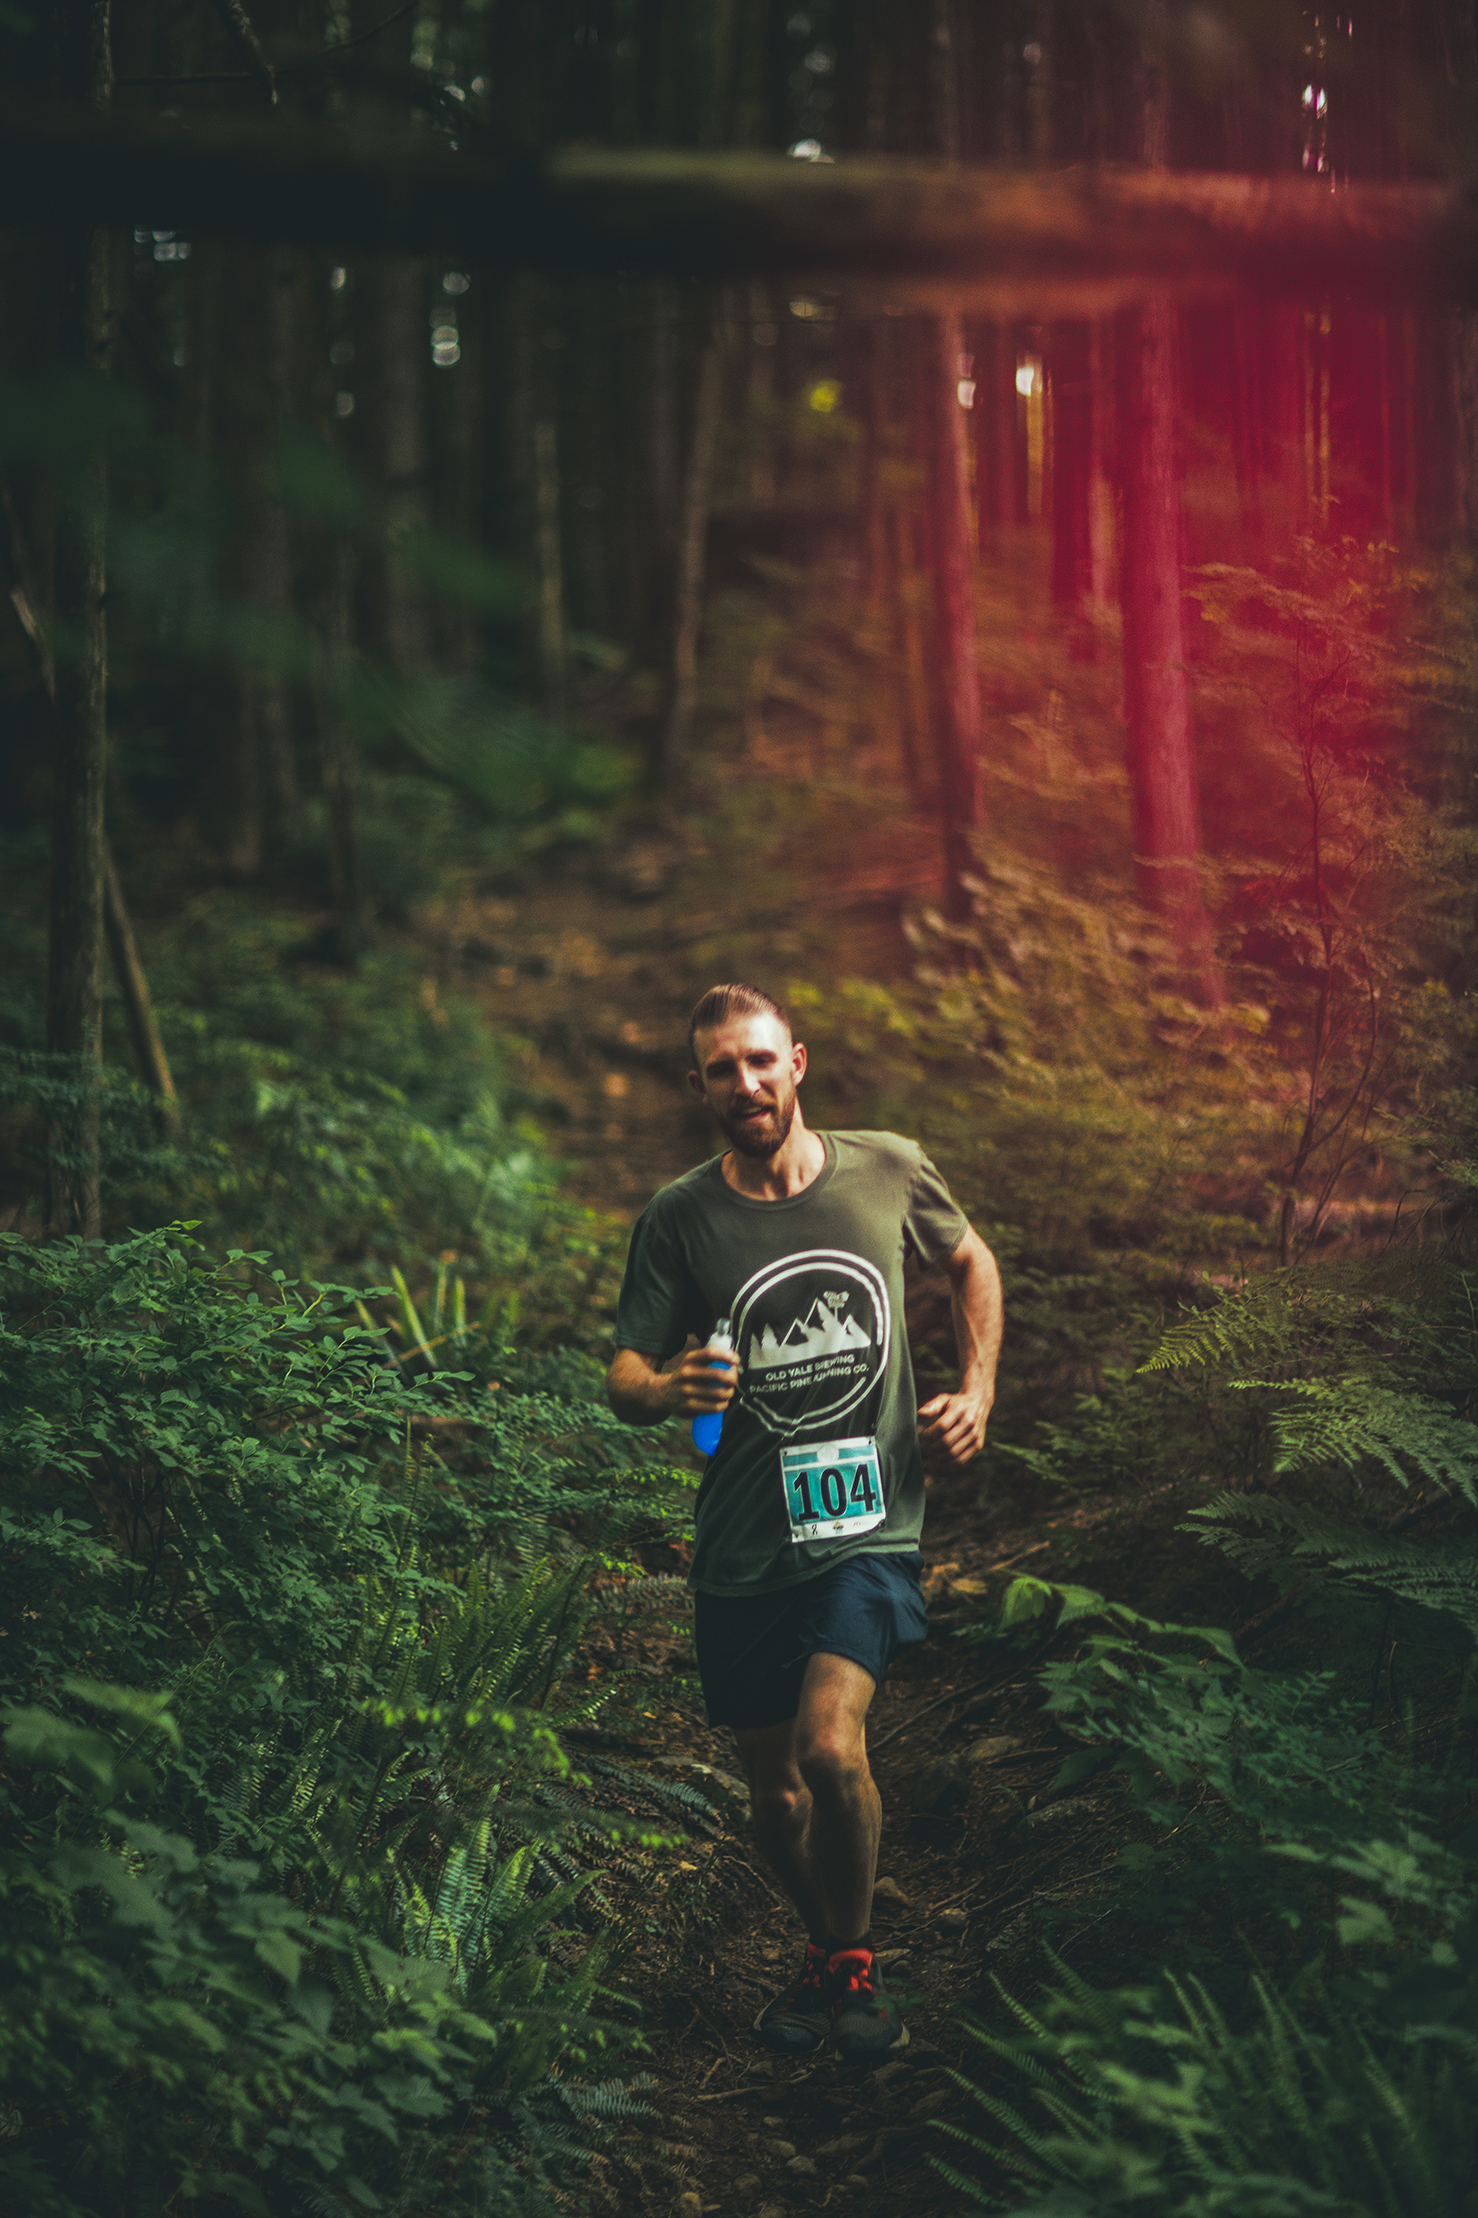 Fraser Valley Trail Races - Bear Mountain - IMG_1829 by Brice Ferre Studio - Vancouver Portrait Adventure and Athlete Photographer.jpg